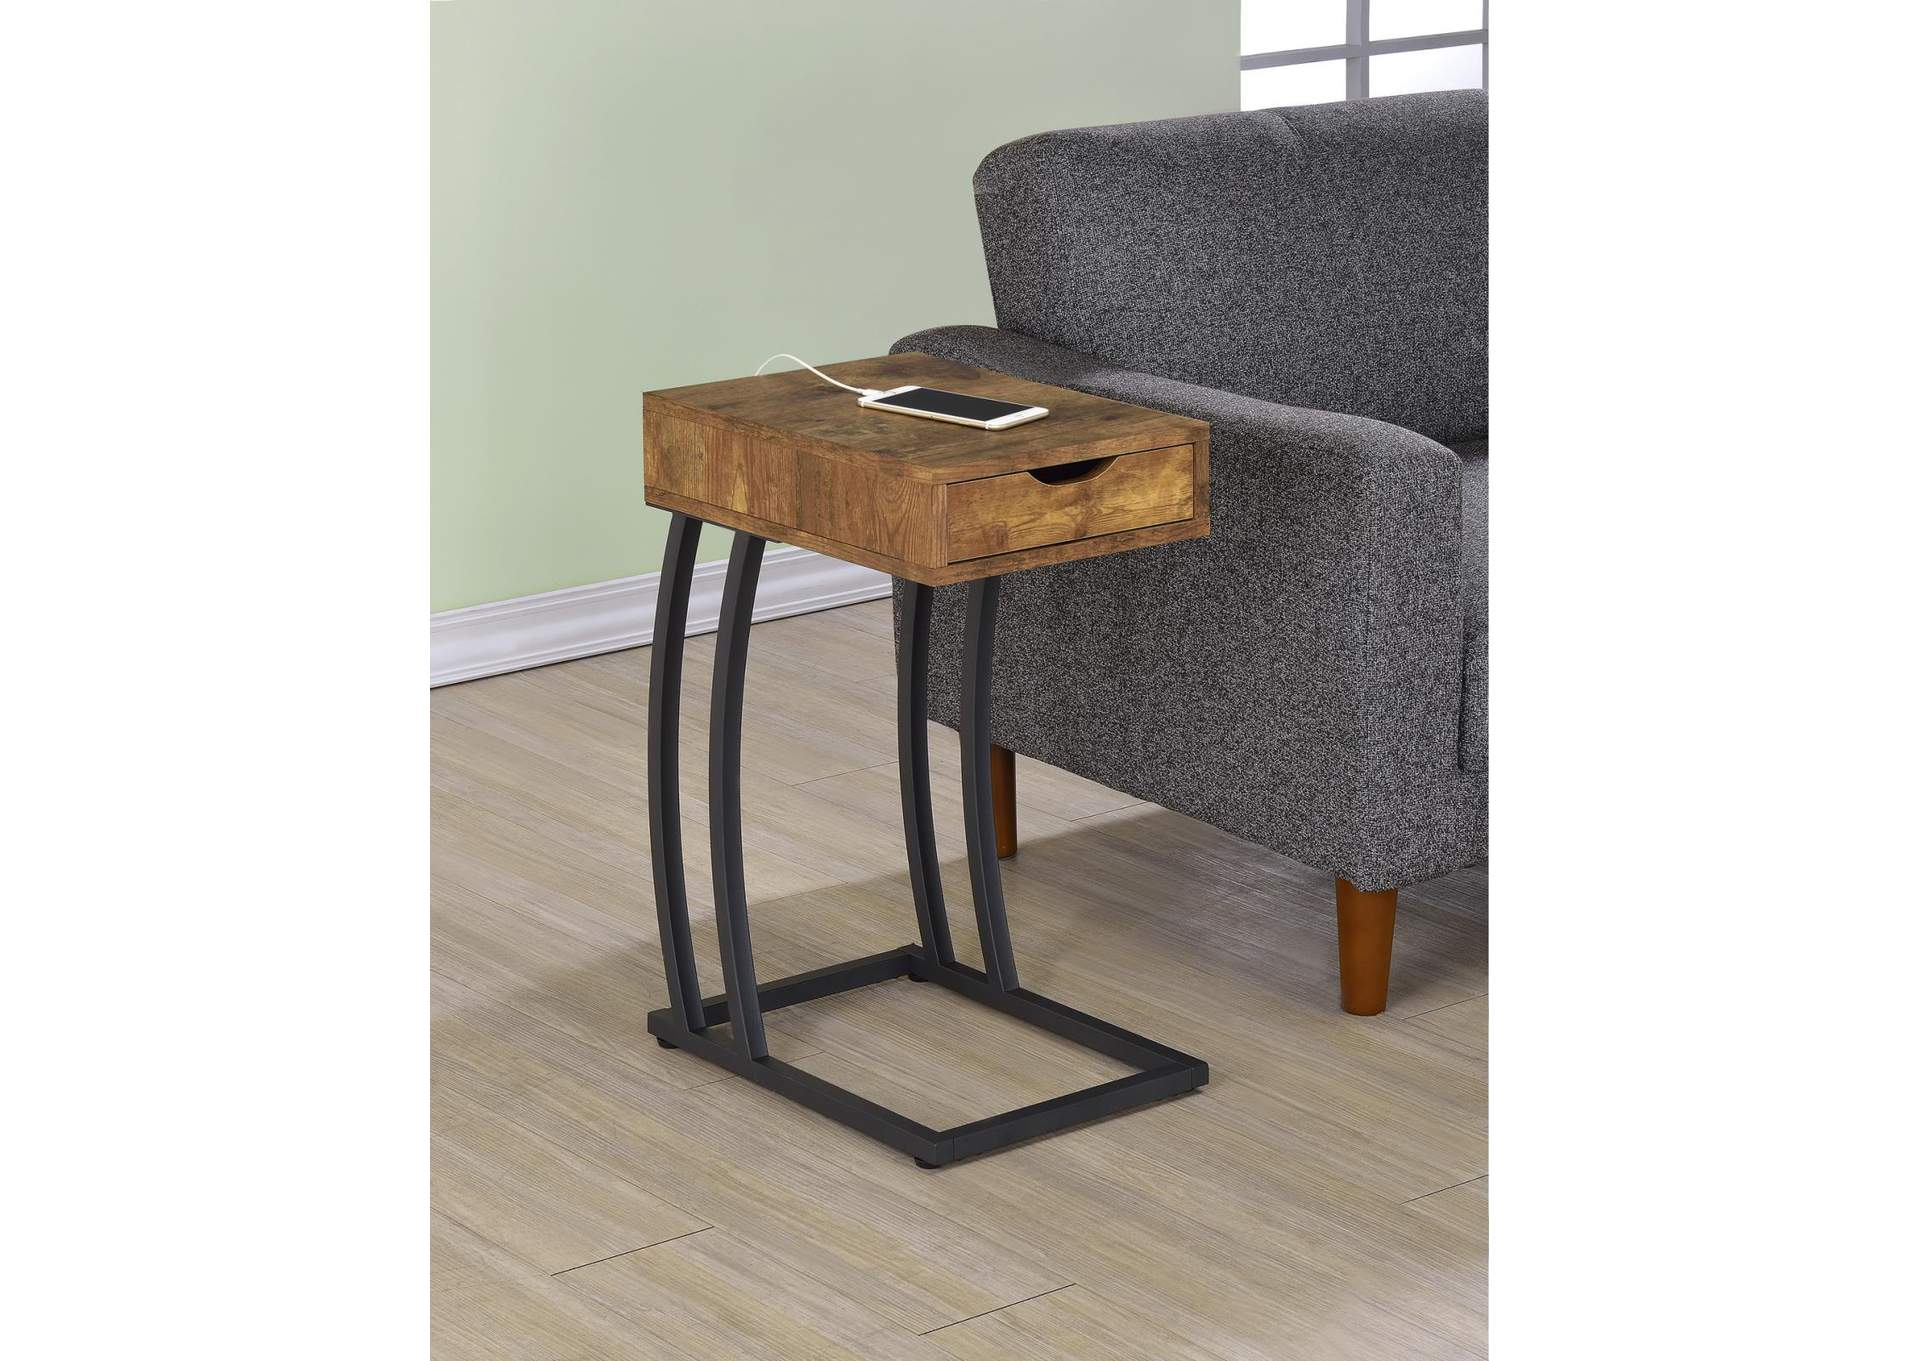 Antique Nutmeg Industrial Antique Nutmeg Accent Table,Coaster Furniture